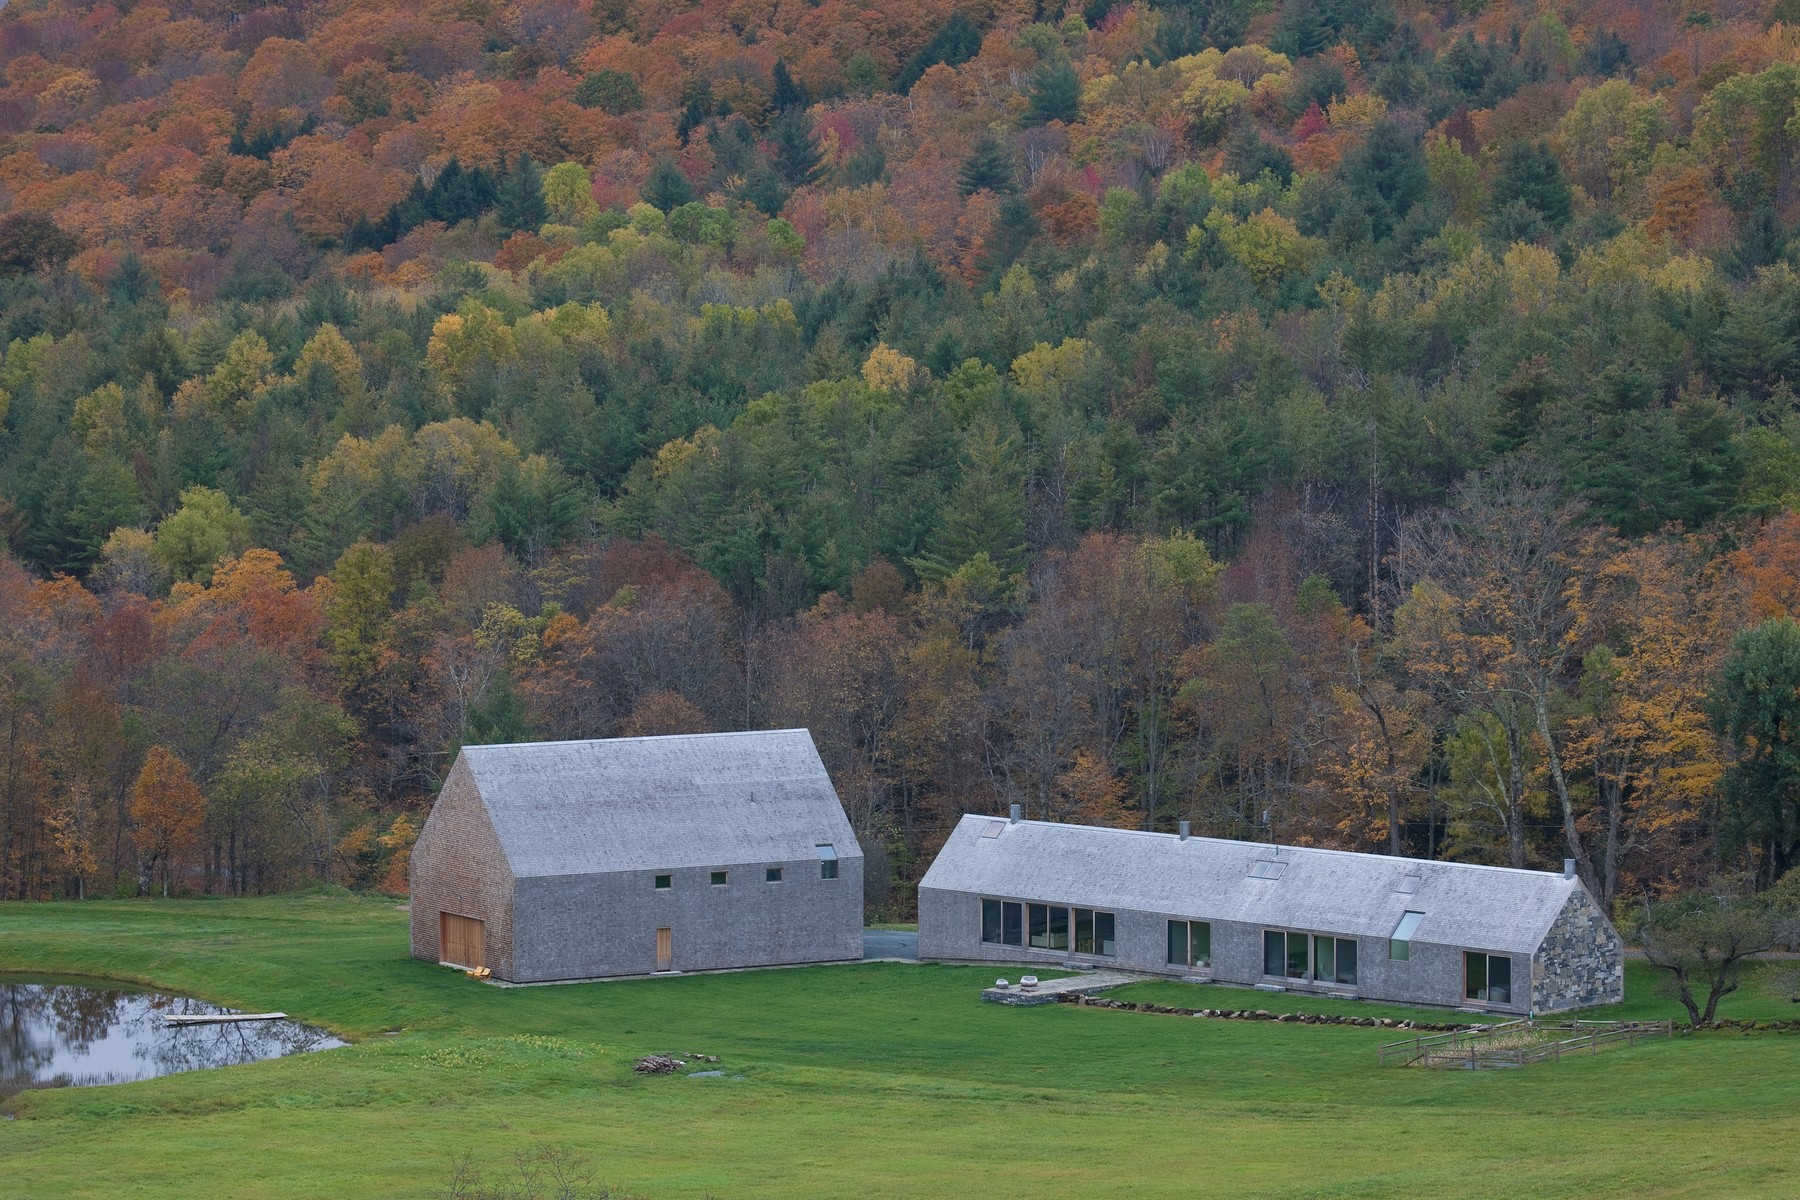 Casa Unifamiliar por un Venta en 1959 Cox District Rd, Woodstock Woodstock, Vermont, 05091 Estados Unidos